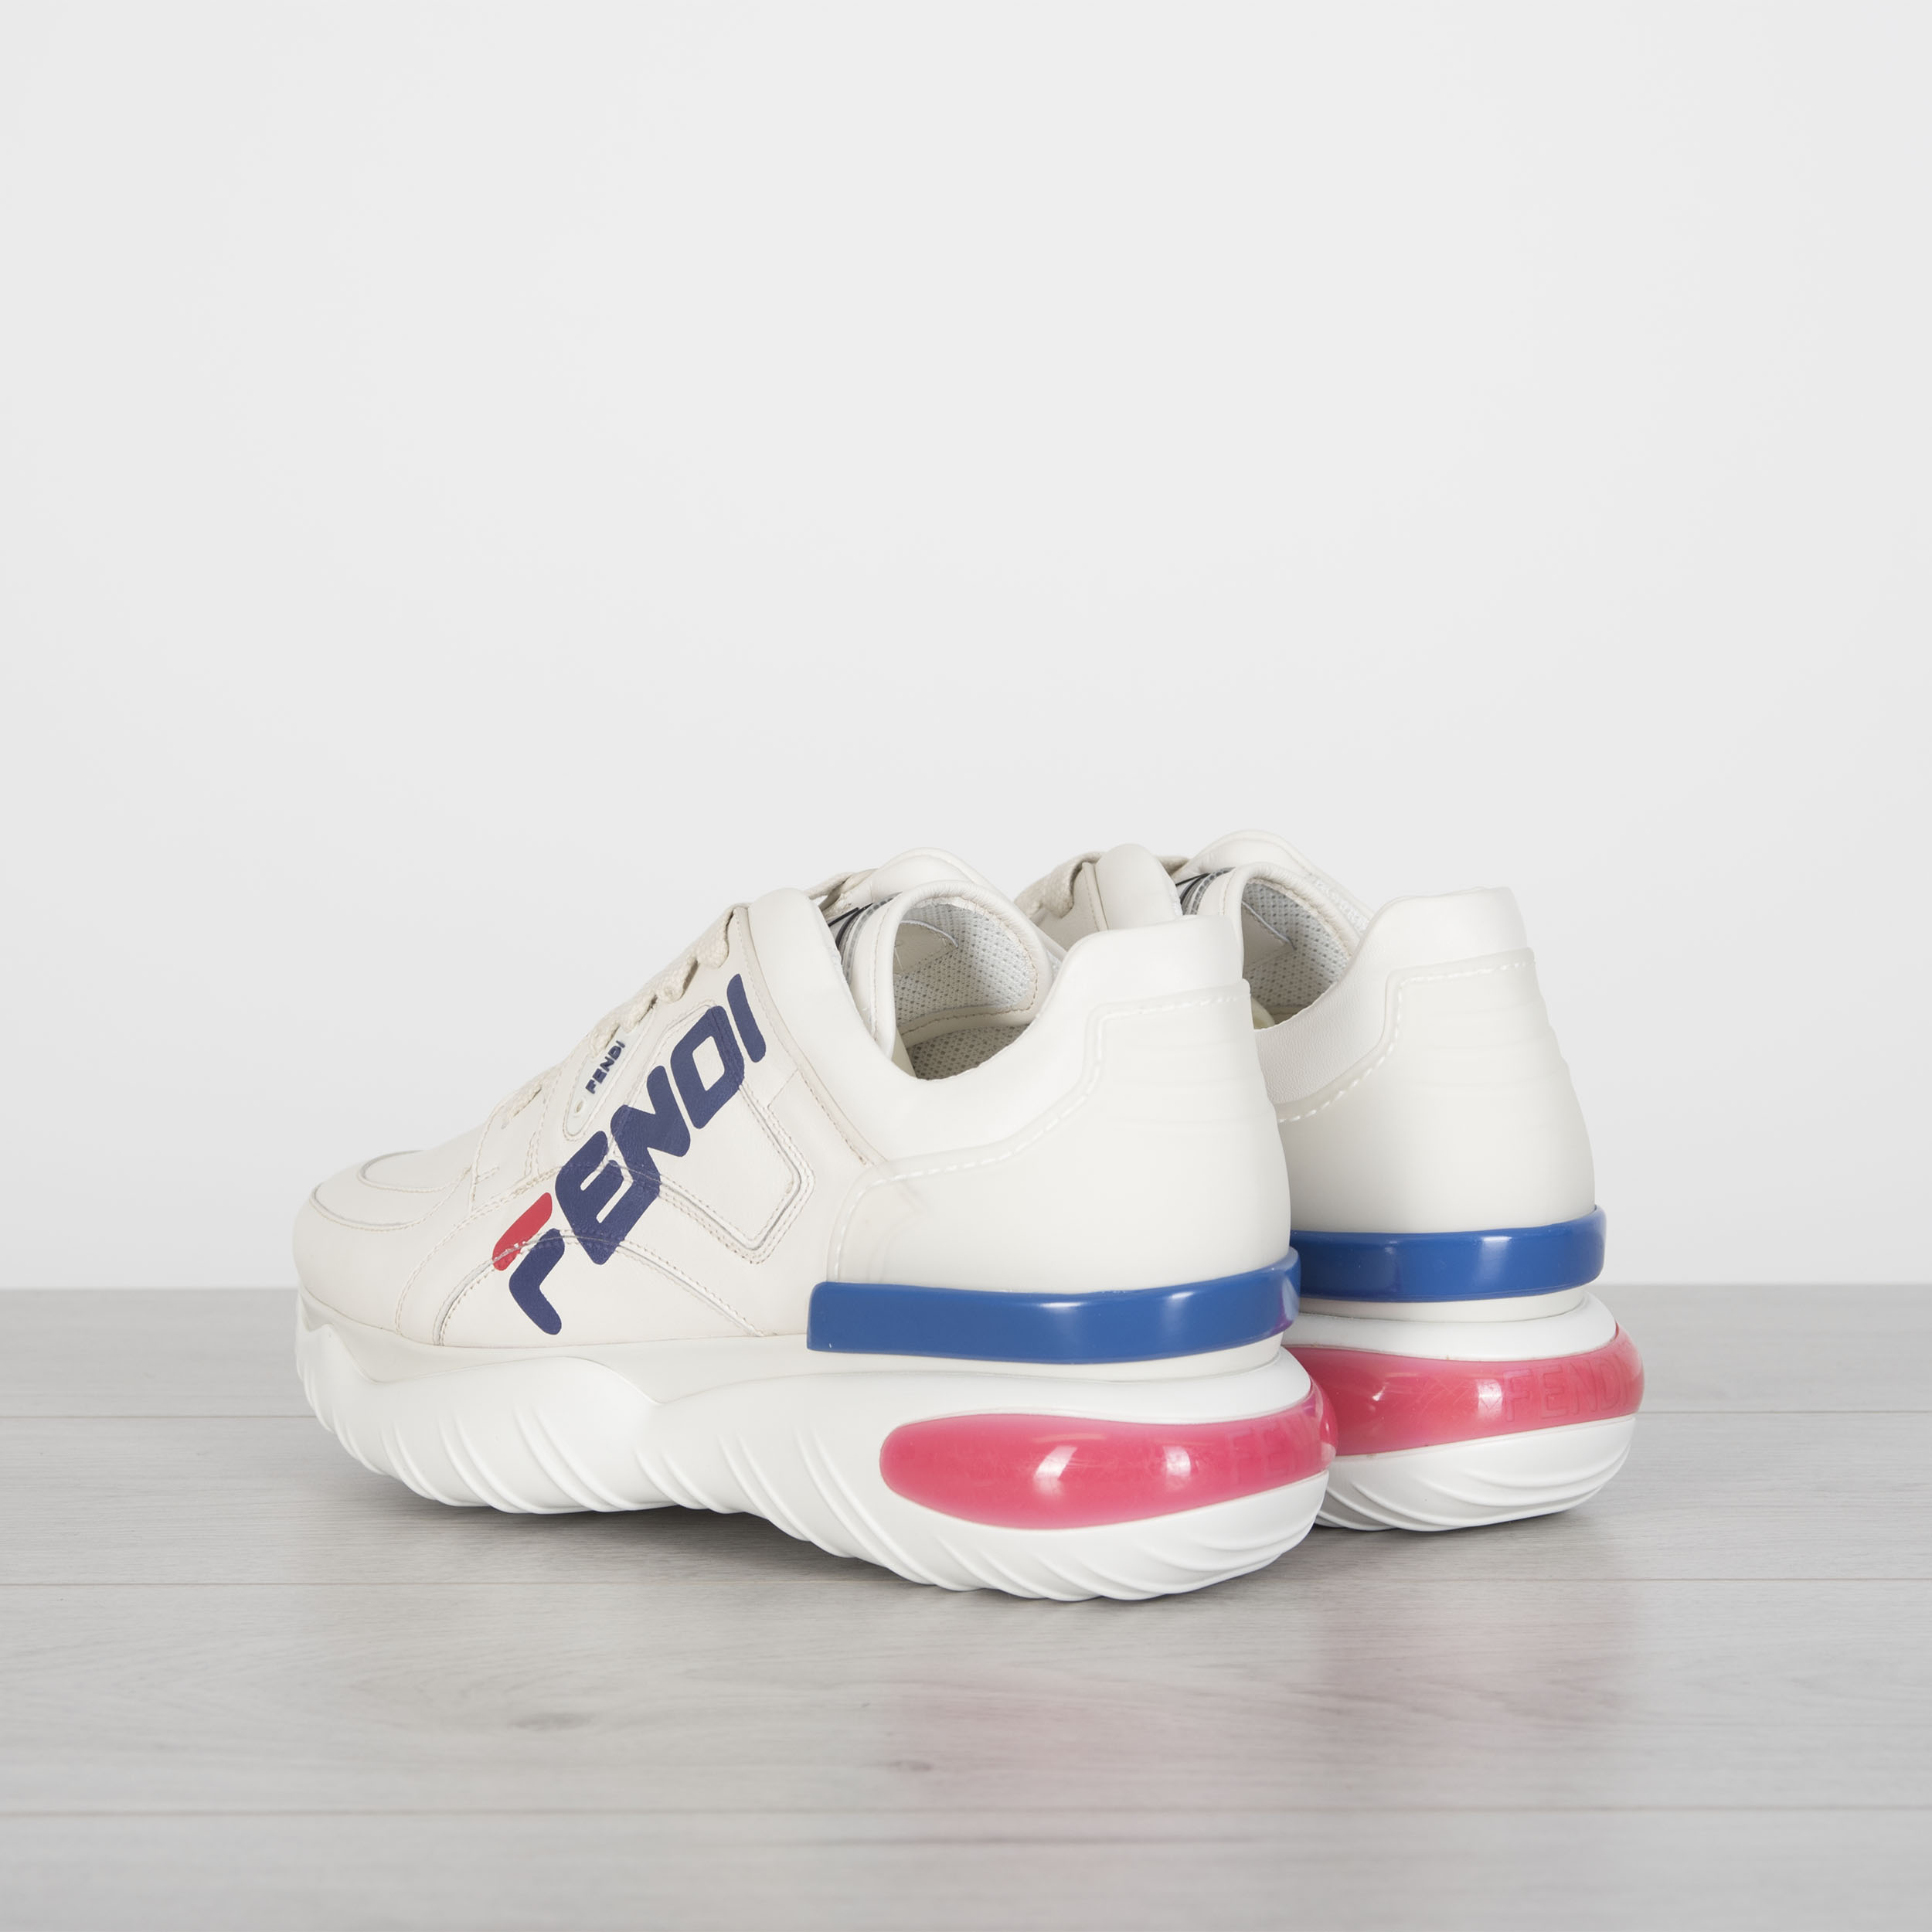 Details about FENDI x FILA 950$ Off White Leather Low Top Sneakers With Fendi Mania Logo